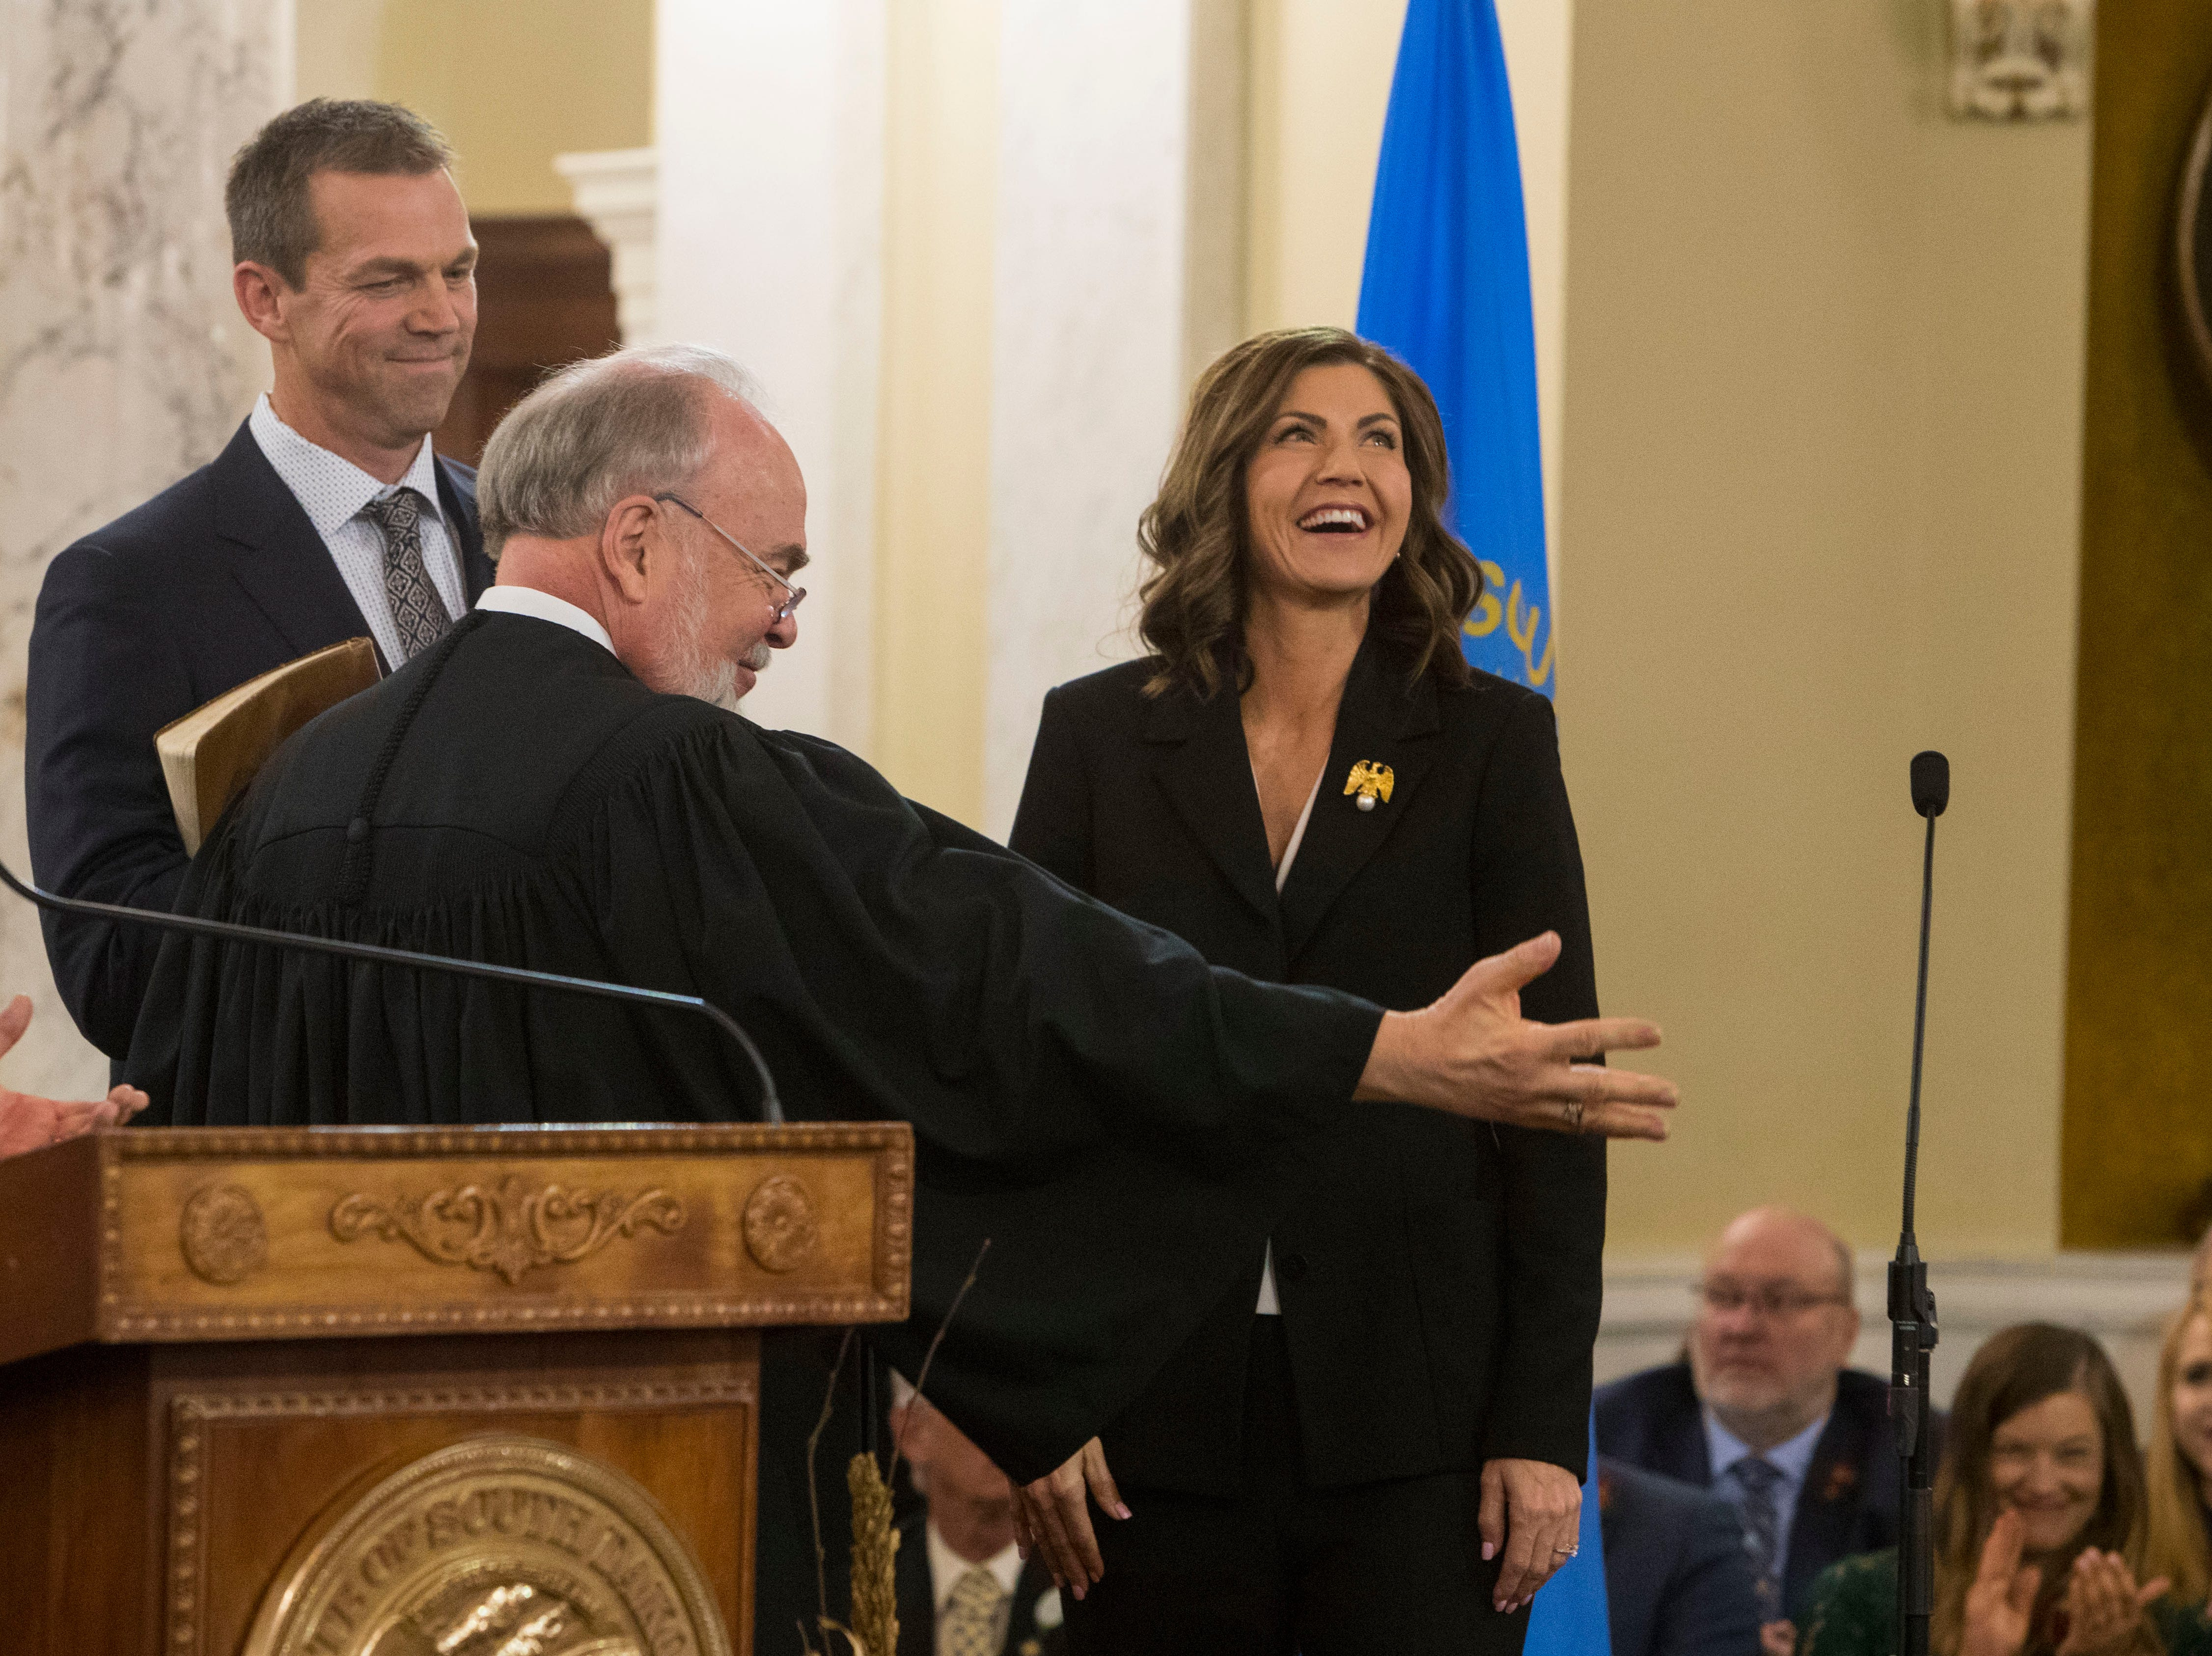 Gov.-elect Kristi Noem is sworn in as South DakotaÕs 33rd governor, Saturday, Jan. 5, 2019 in Pierre, S.D. Noem is the first woman to hold the position of governor in South Dakota.